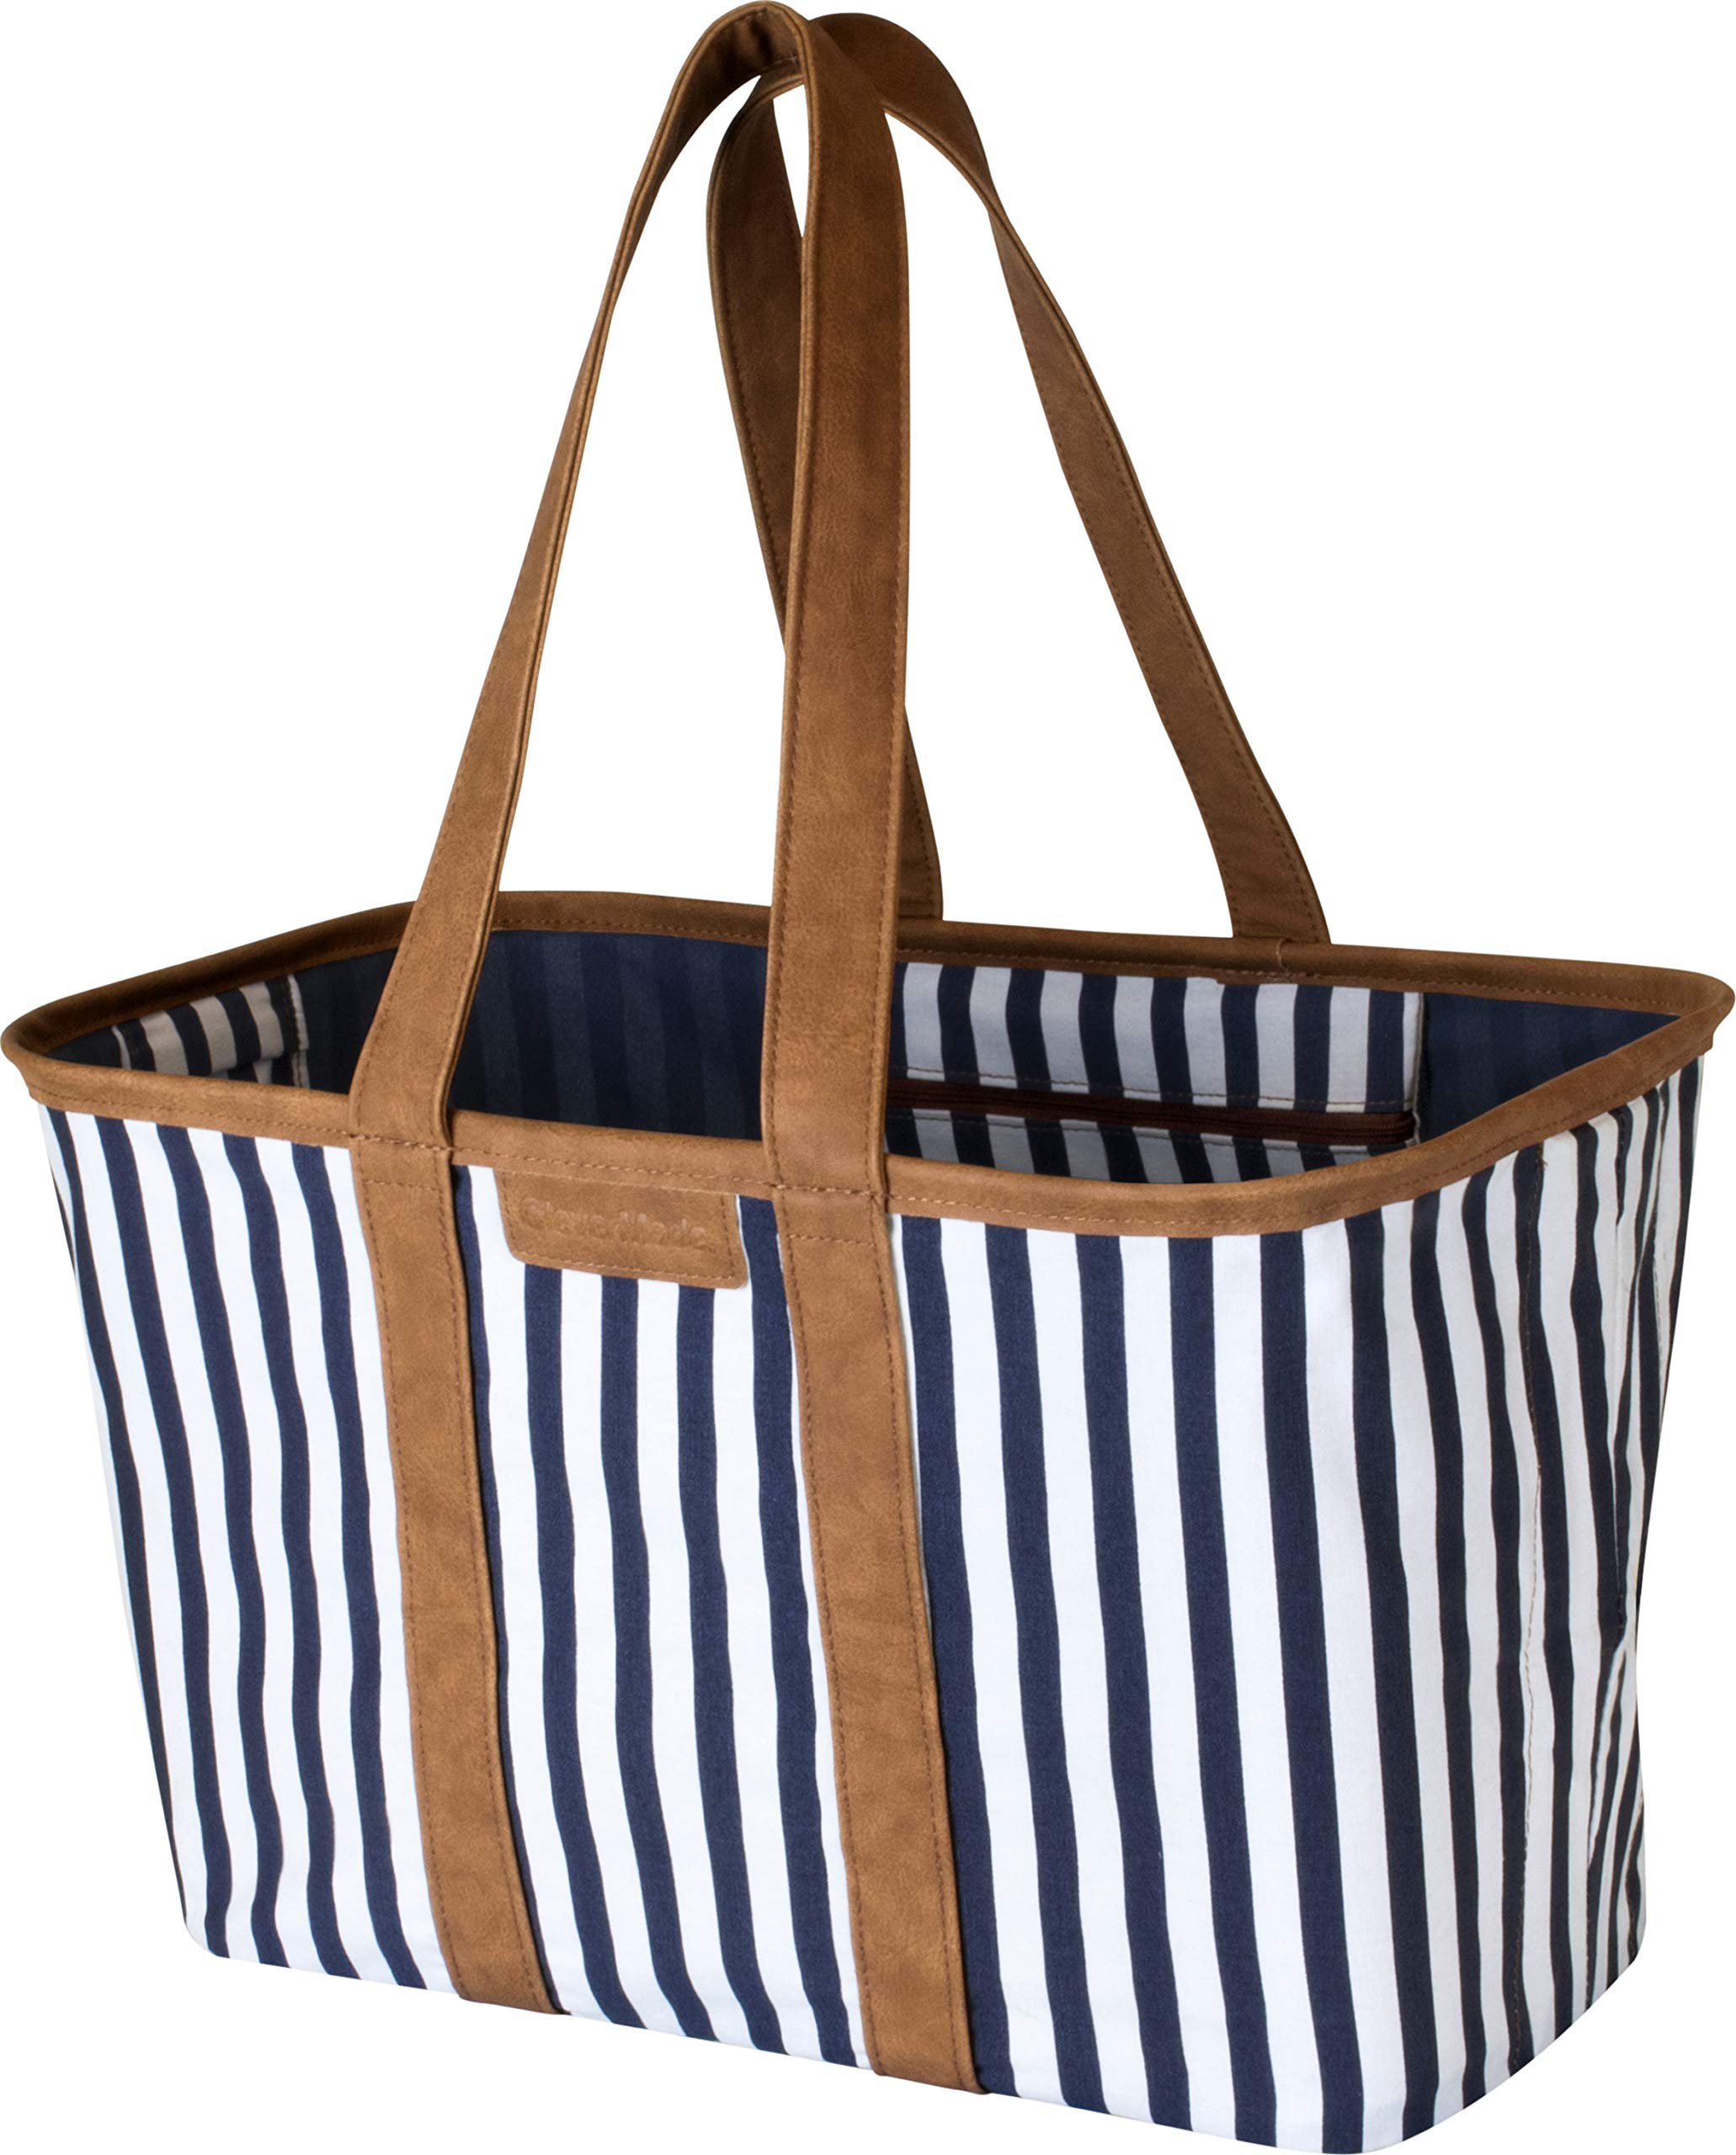 CleverMade 30L SnapBasket LUXE - Reusable Collapsible Durable Grocery Shopping Bag - Heavy Duty Large Structured Tote, Navy Striped by CleverMade